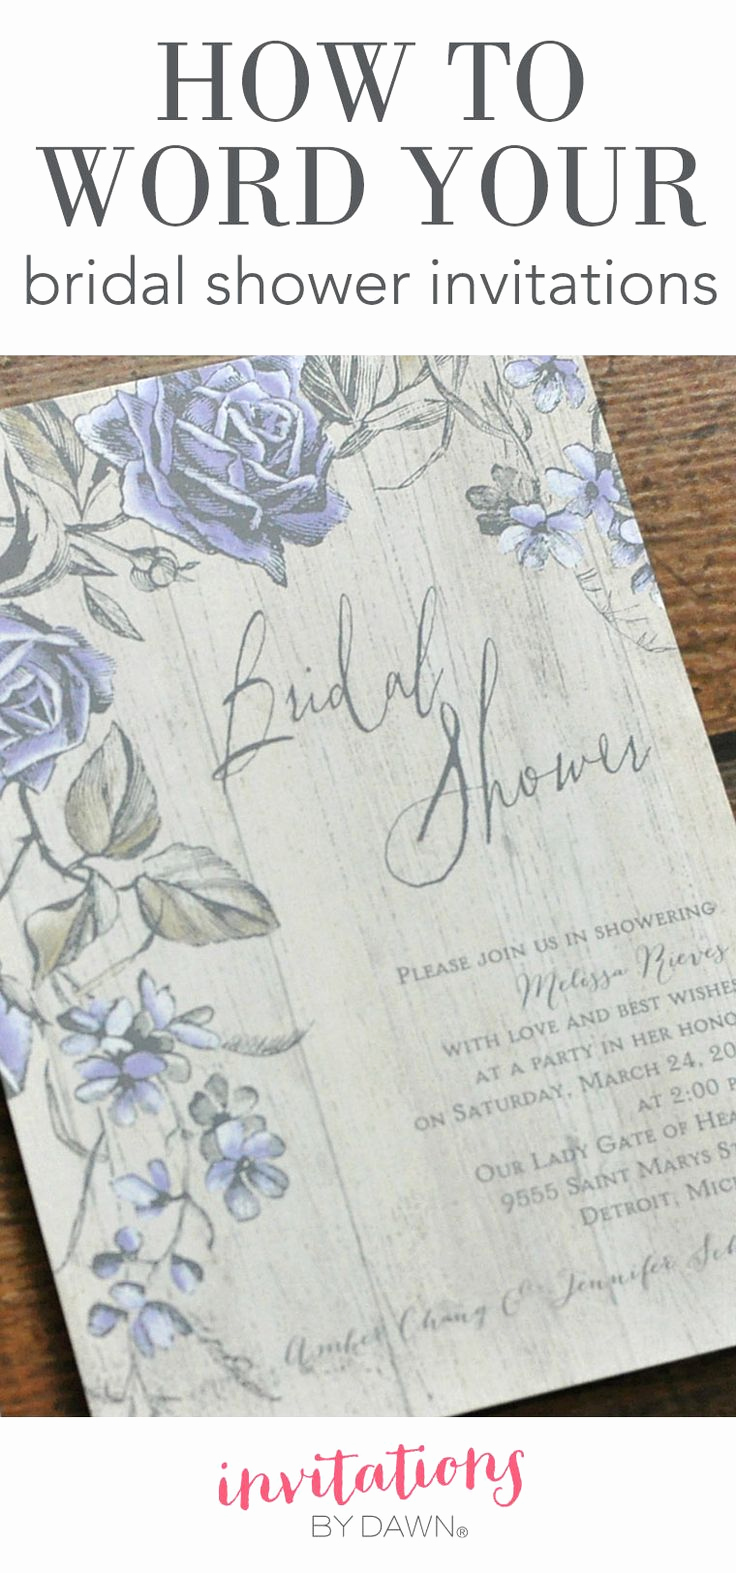 Bridal Shower Invitation Wording Inspirational Best 25 Bridal Shower Invitation Wording Ideas On